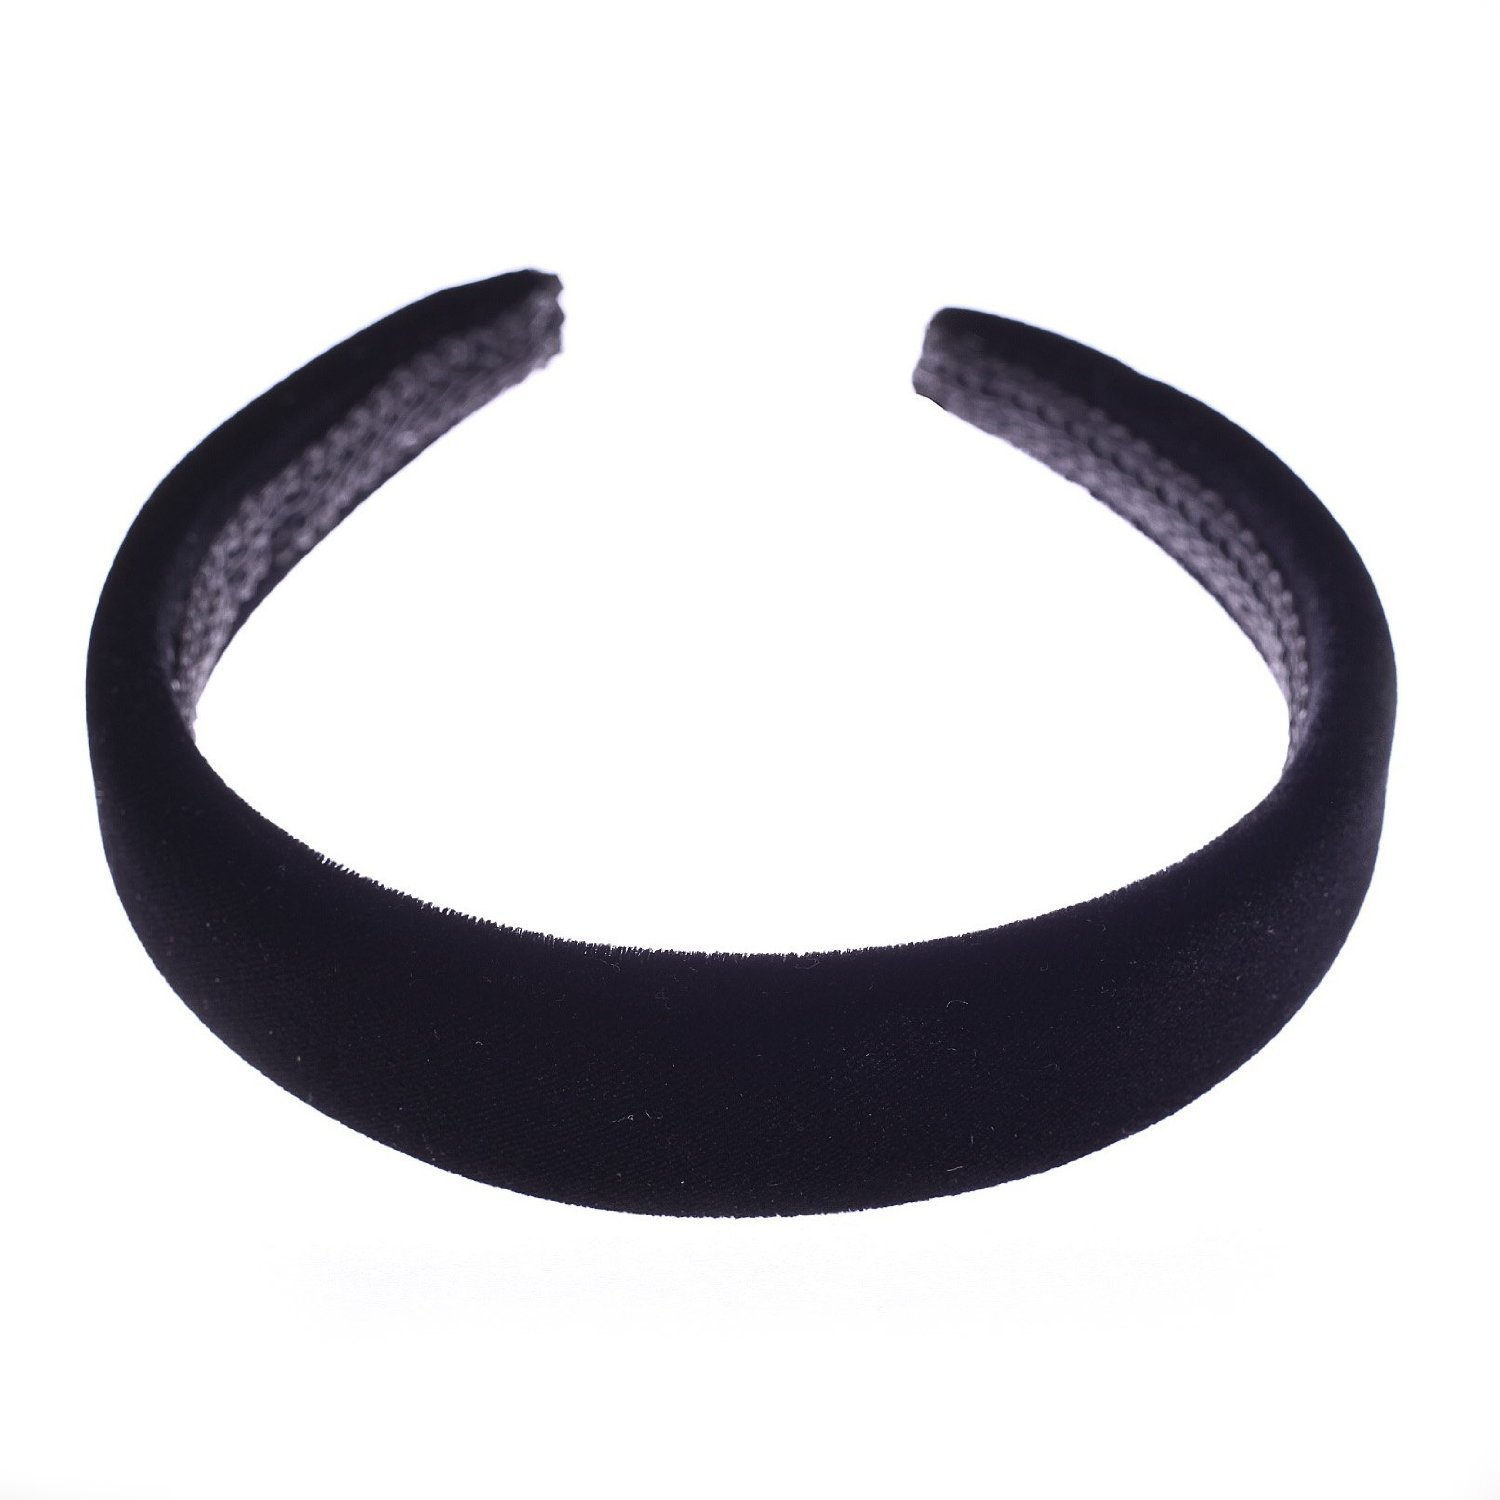 Black headband with padded velvet alice hair band. 2696f30d5f8